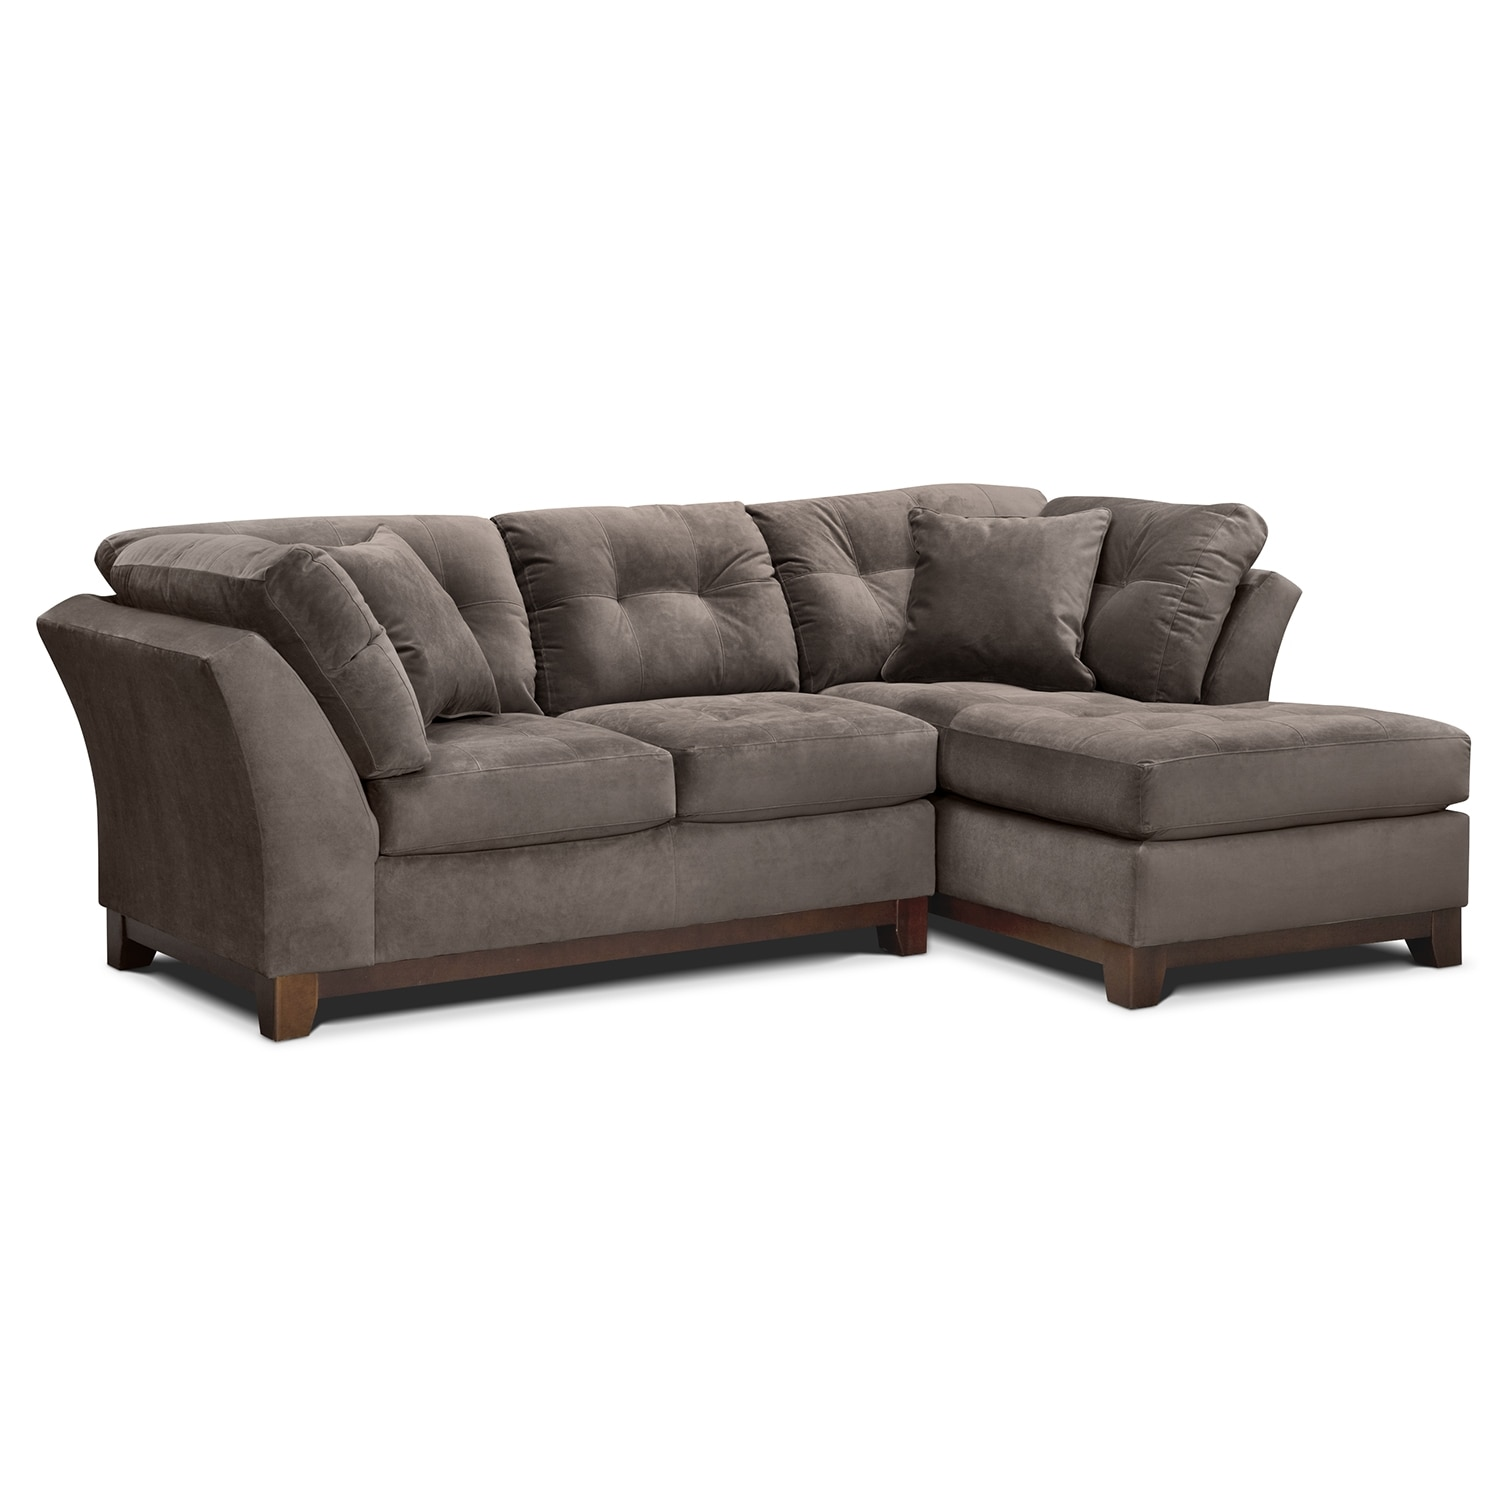 Solace 2-Piece Right-Facing Chaise Sectional - Gray